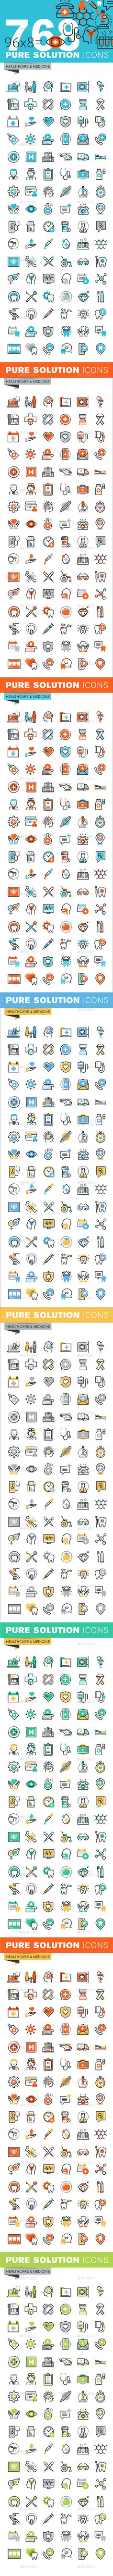 Set of Thin Line Flat Design Icons of Healthcare and Medicine. Download here: http://graphicriver.net/item/set-of-thin-line-flat-design-icons-of-healthcare-and-medicine/14787745?ref=ksioks